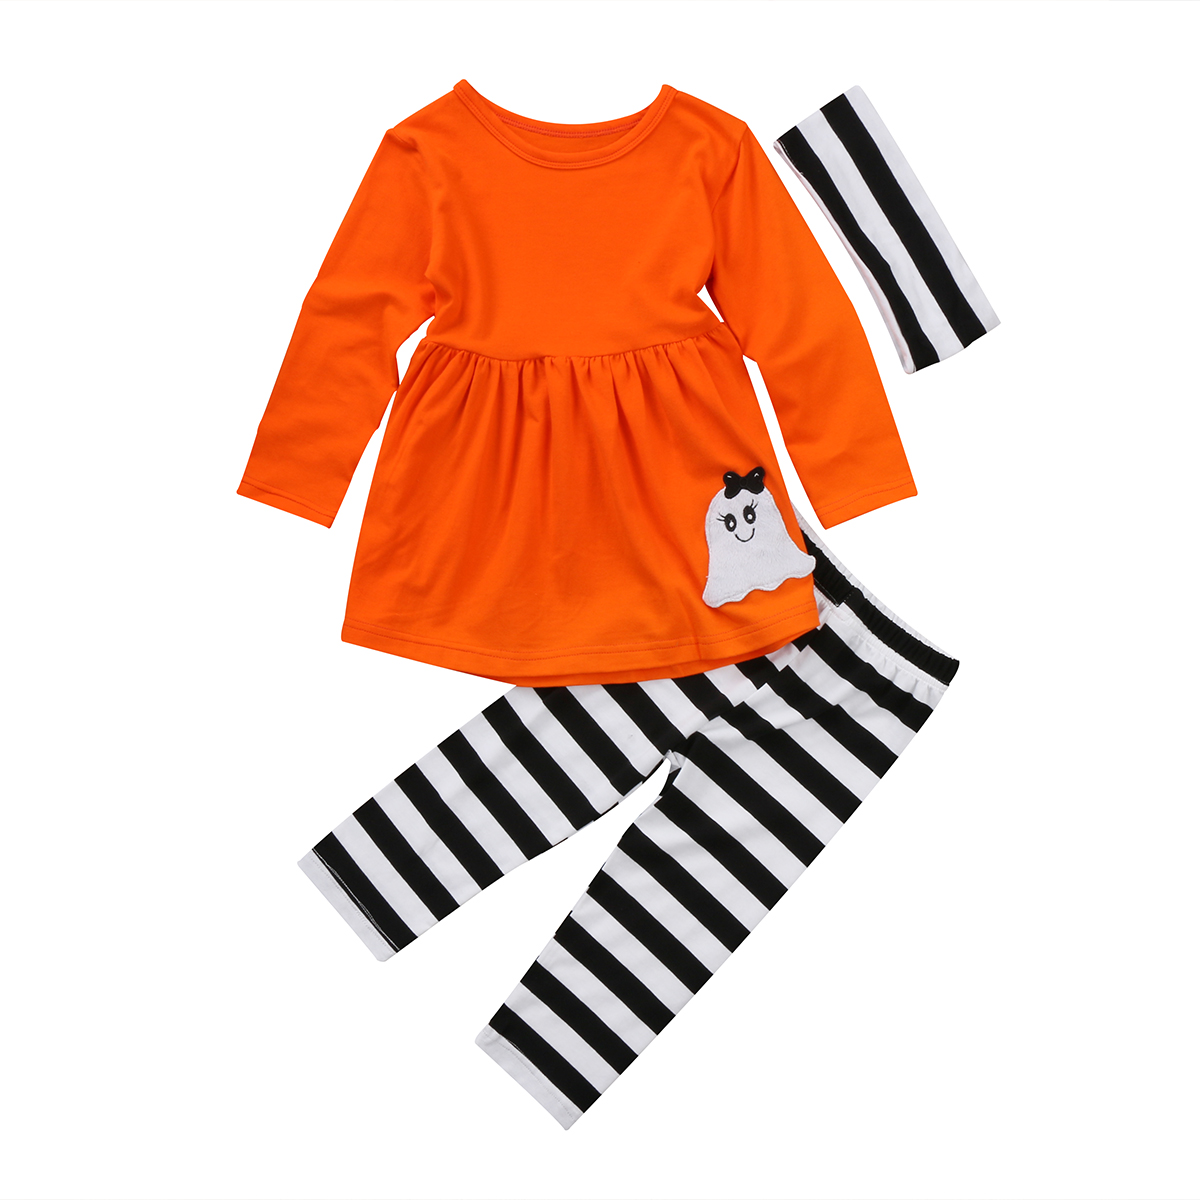 Halloween 3pcs Toddler Kids Baby Girl Top+Pant+Headband Halloween Outfits Clothes Costumes